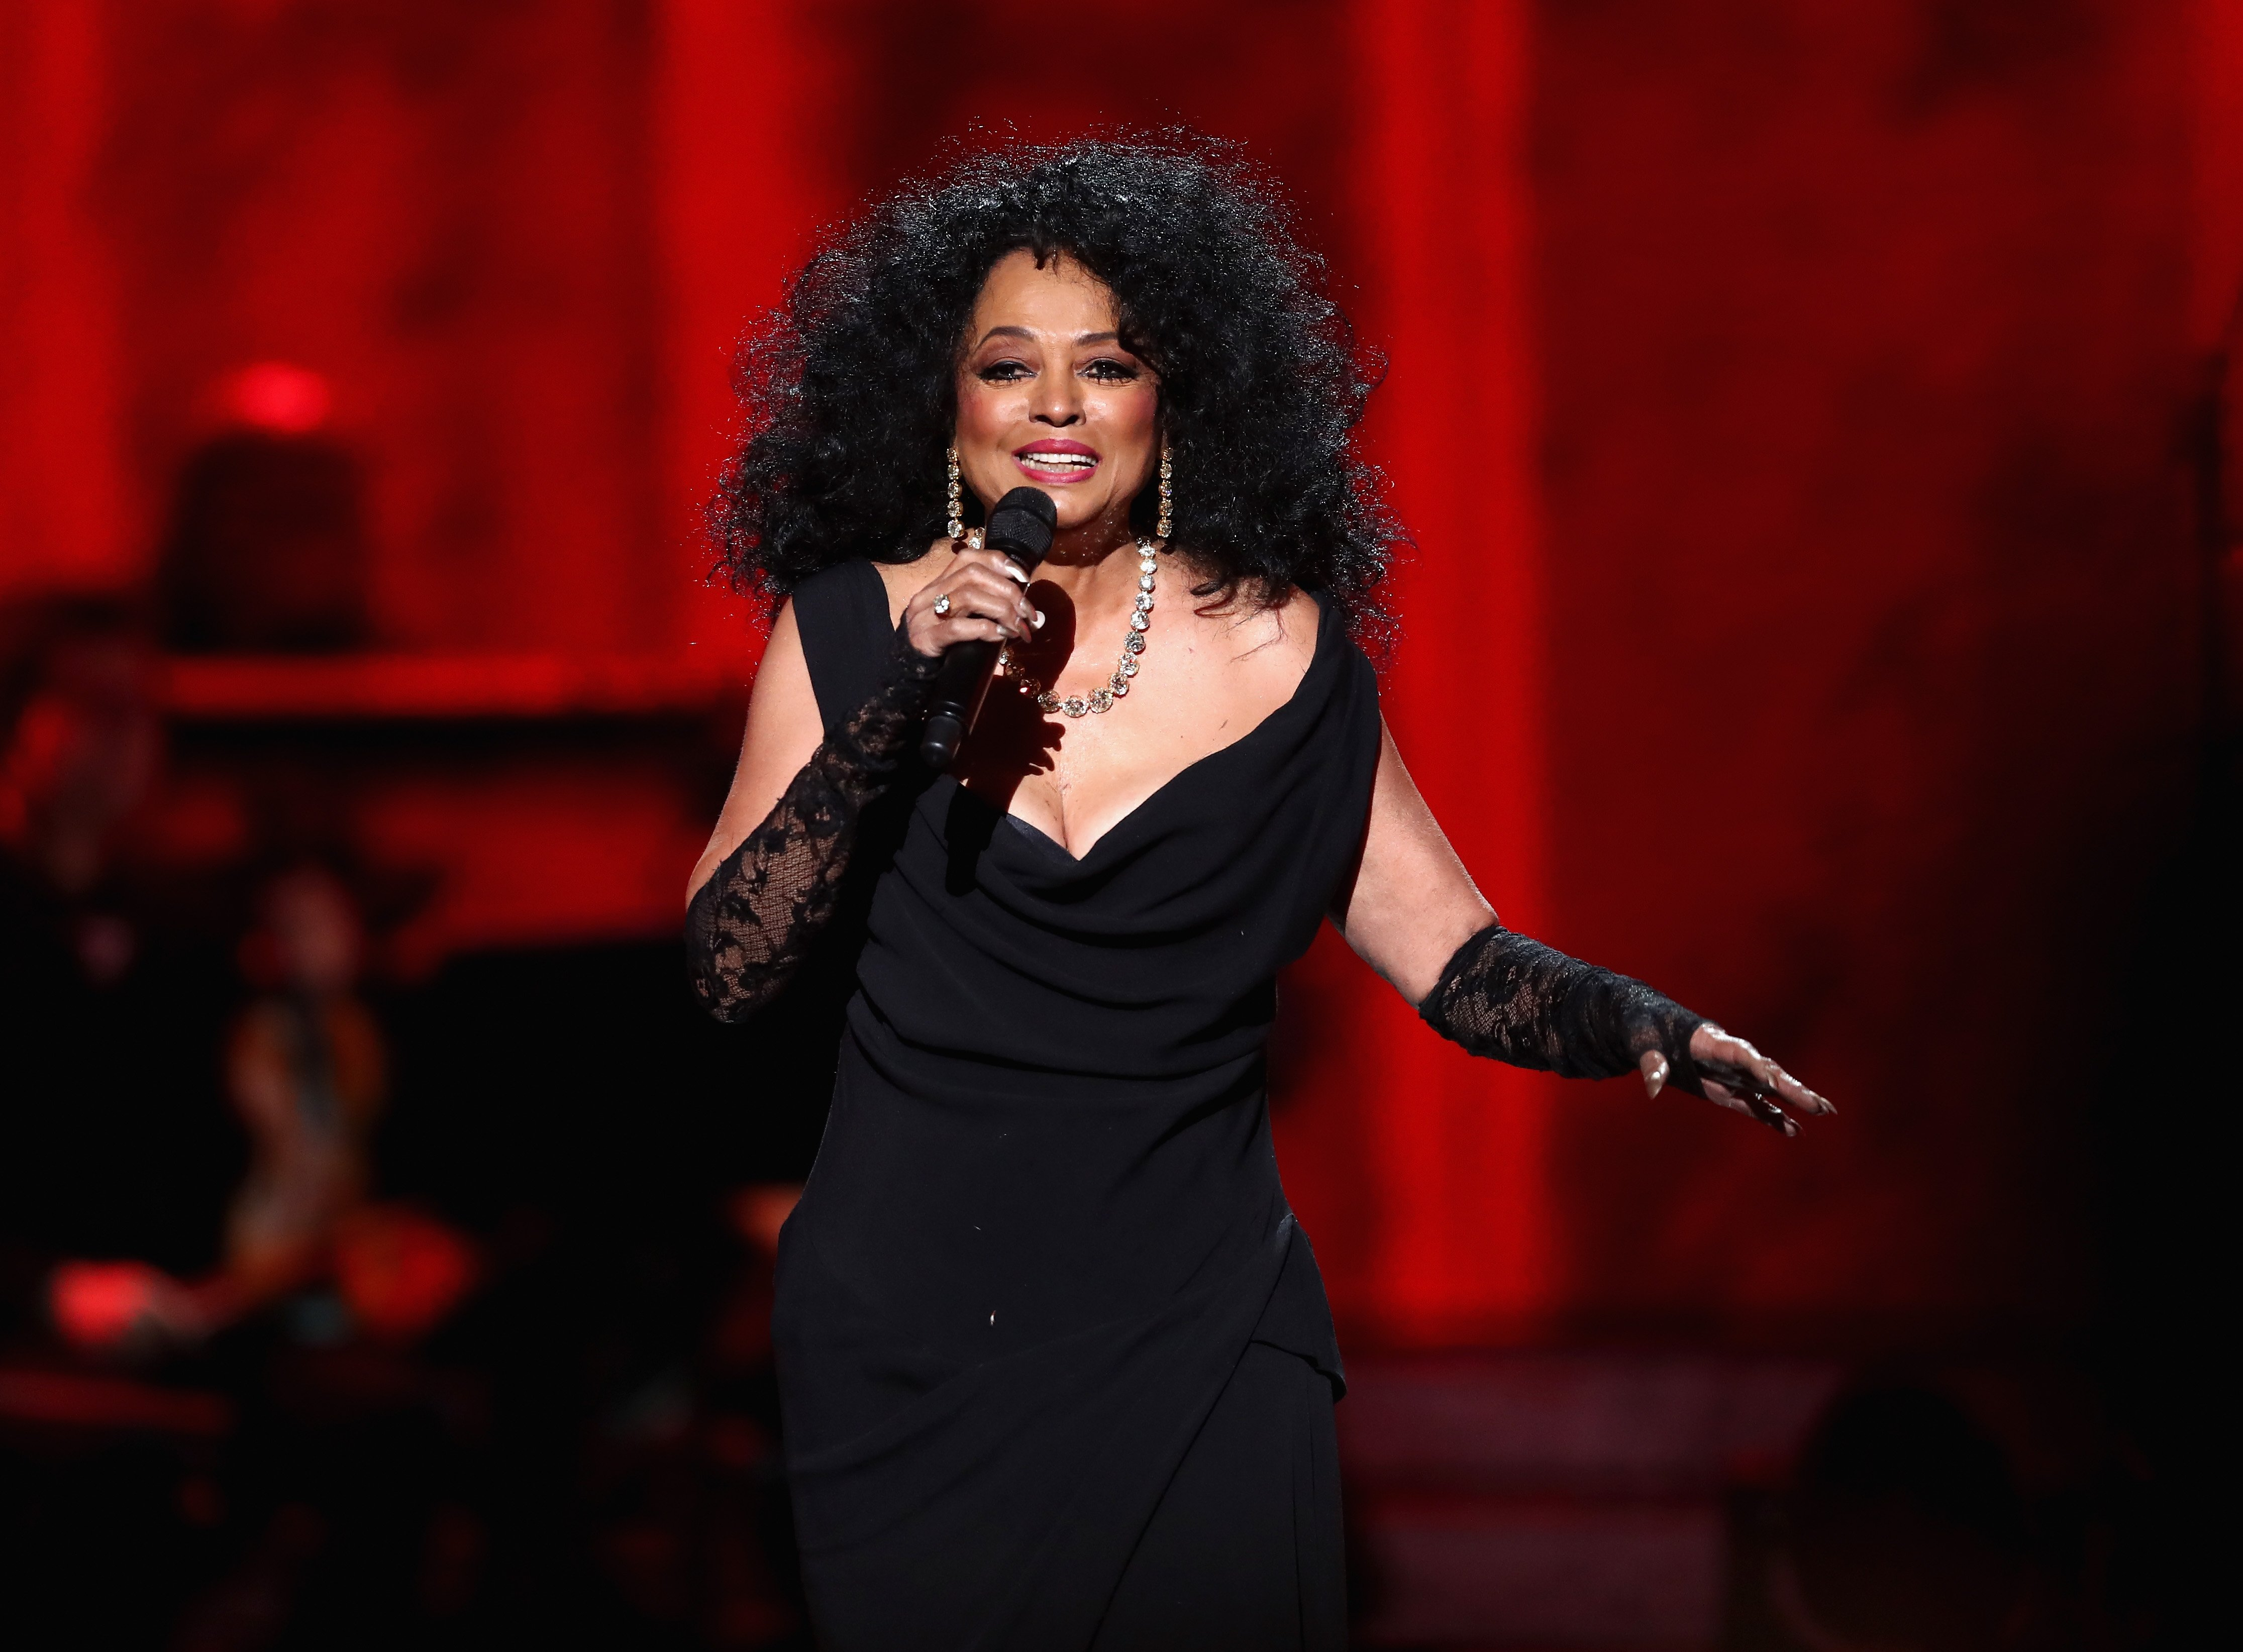 """Diana Ross performs onstage during """"Motown 60: A Grammy Celebration"""" at Microsoft Theater on February 12, 2019. 